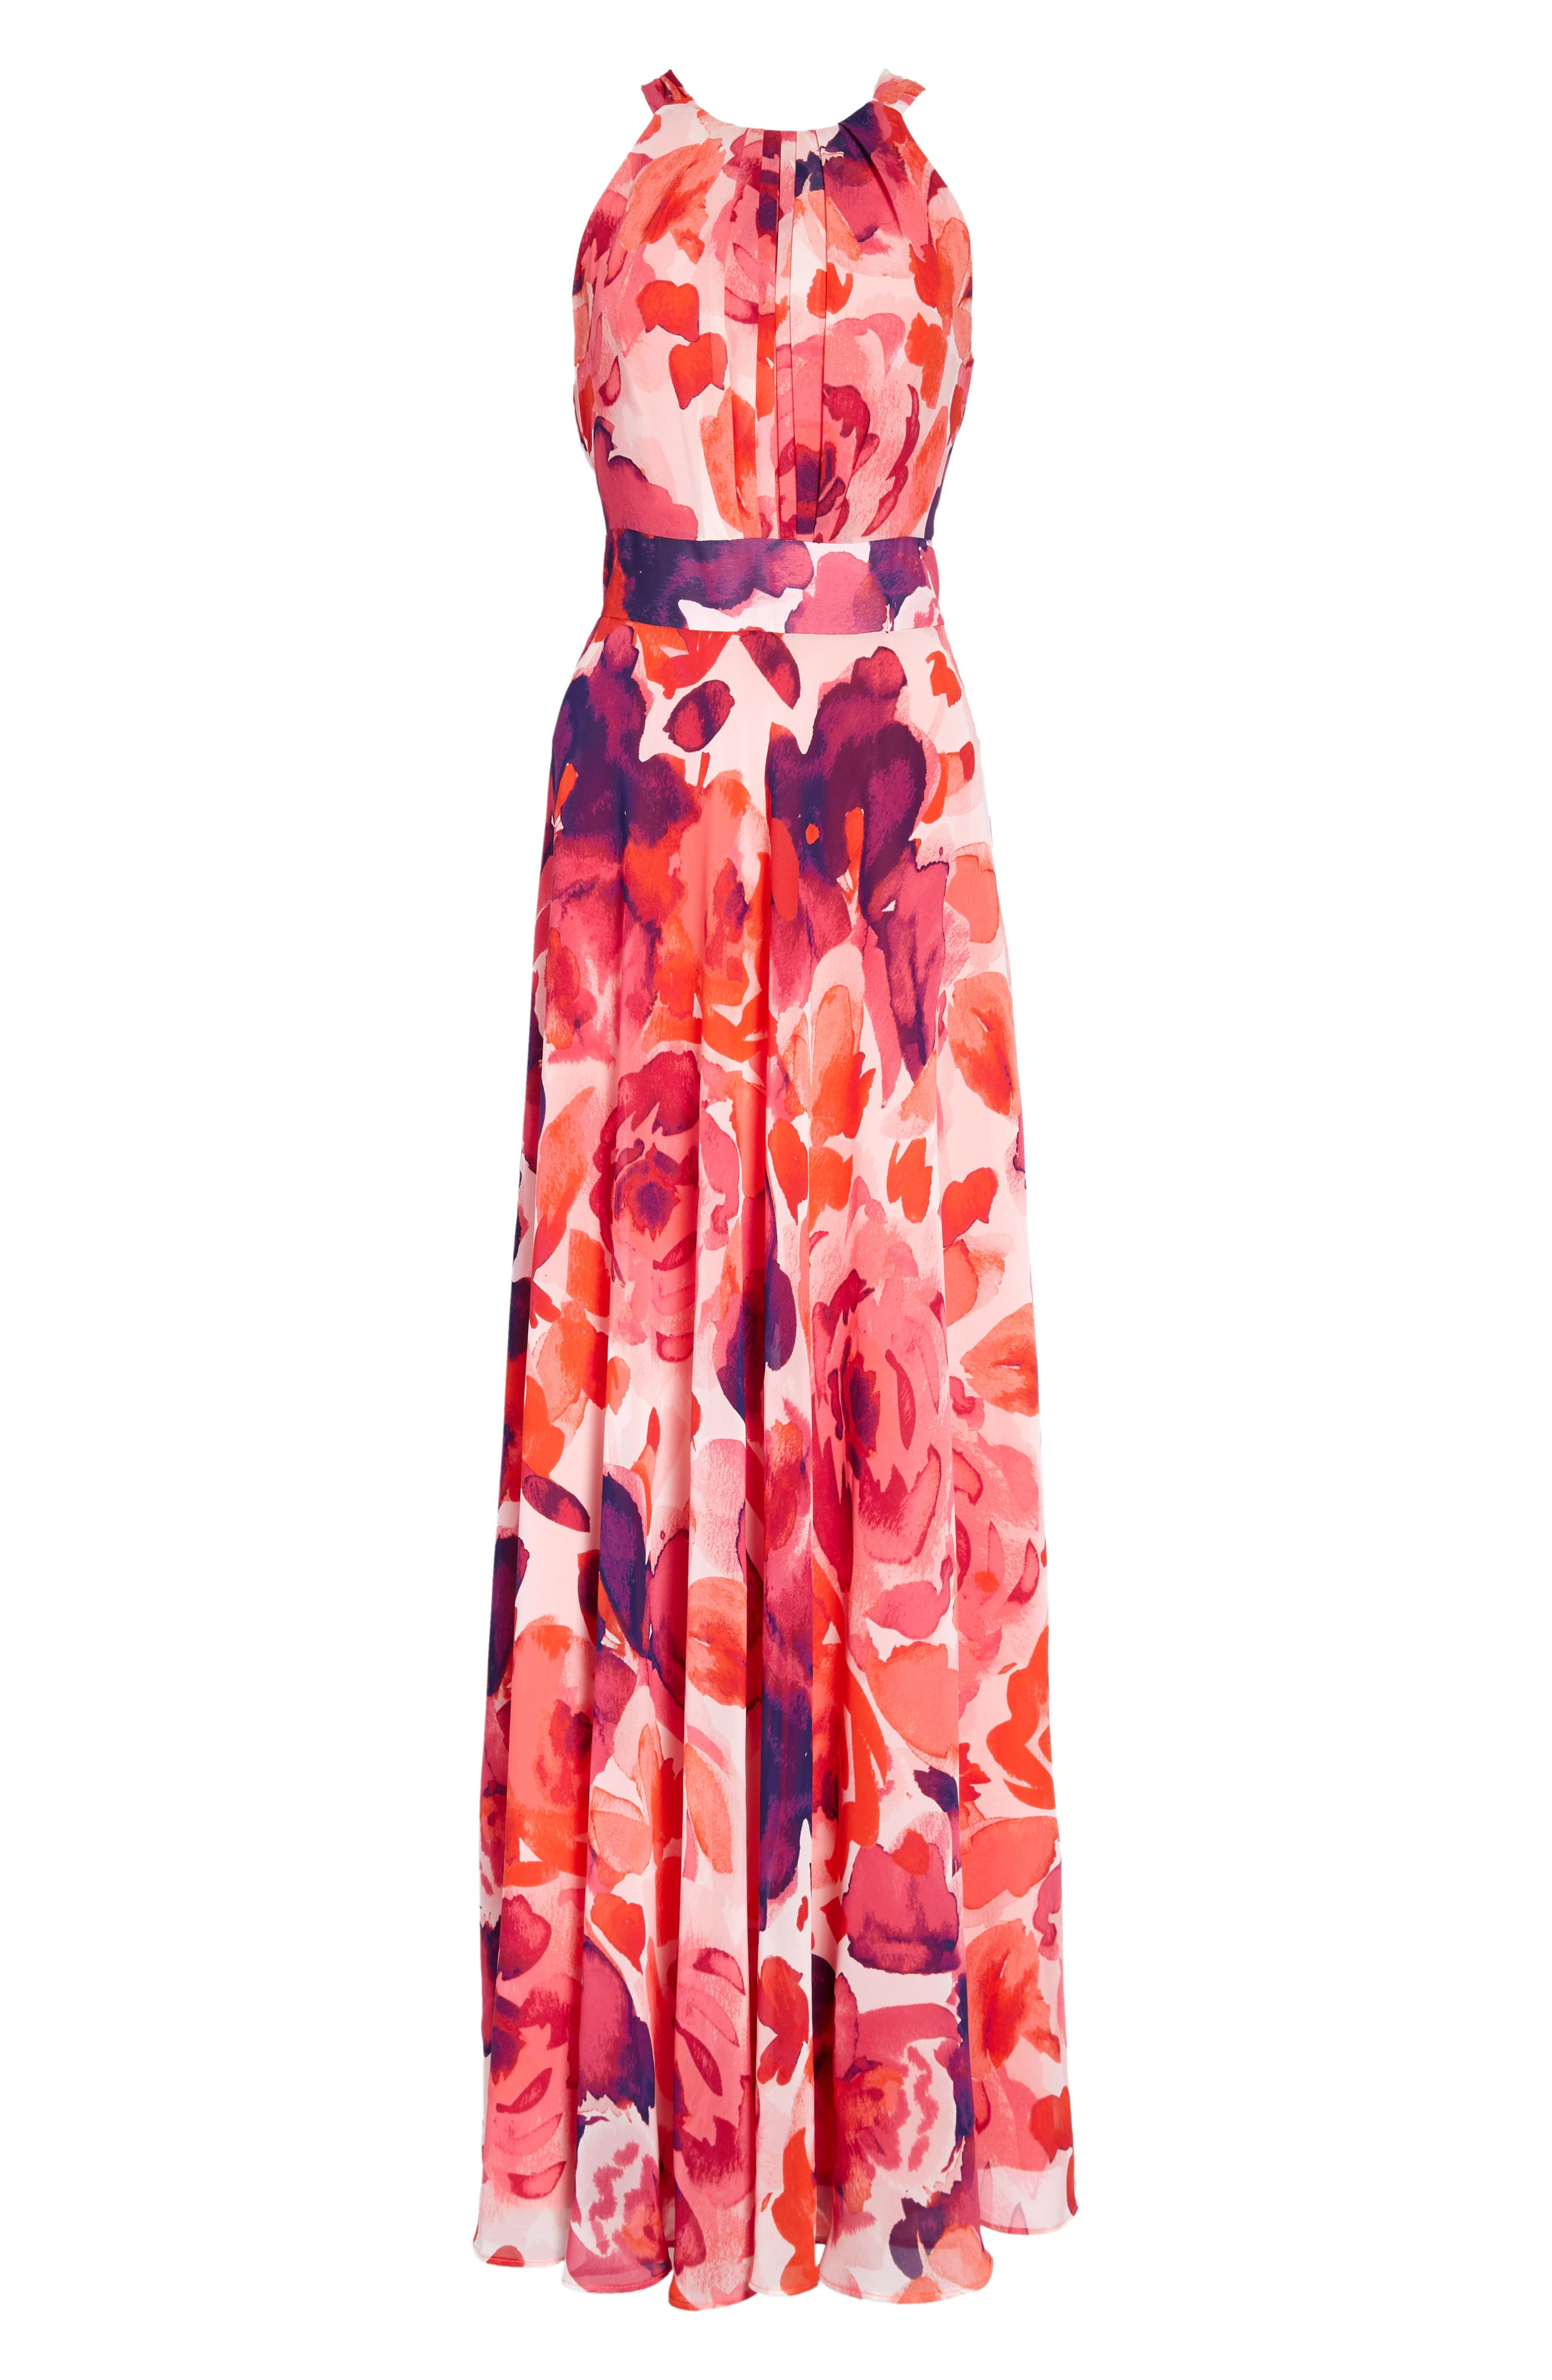 Floral Print Halter Maxi Dress,                             Main thumbnail 1, color,                             660